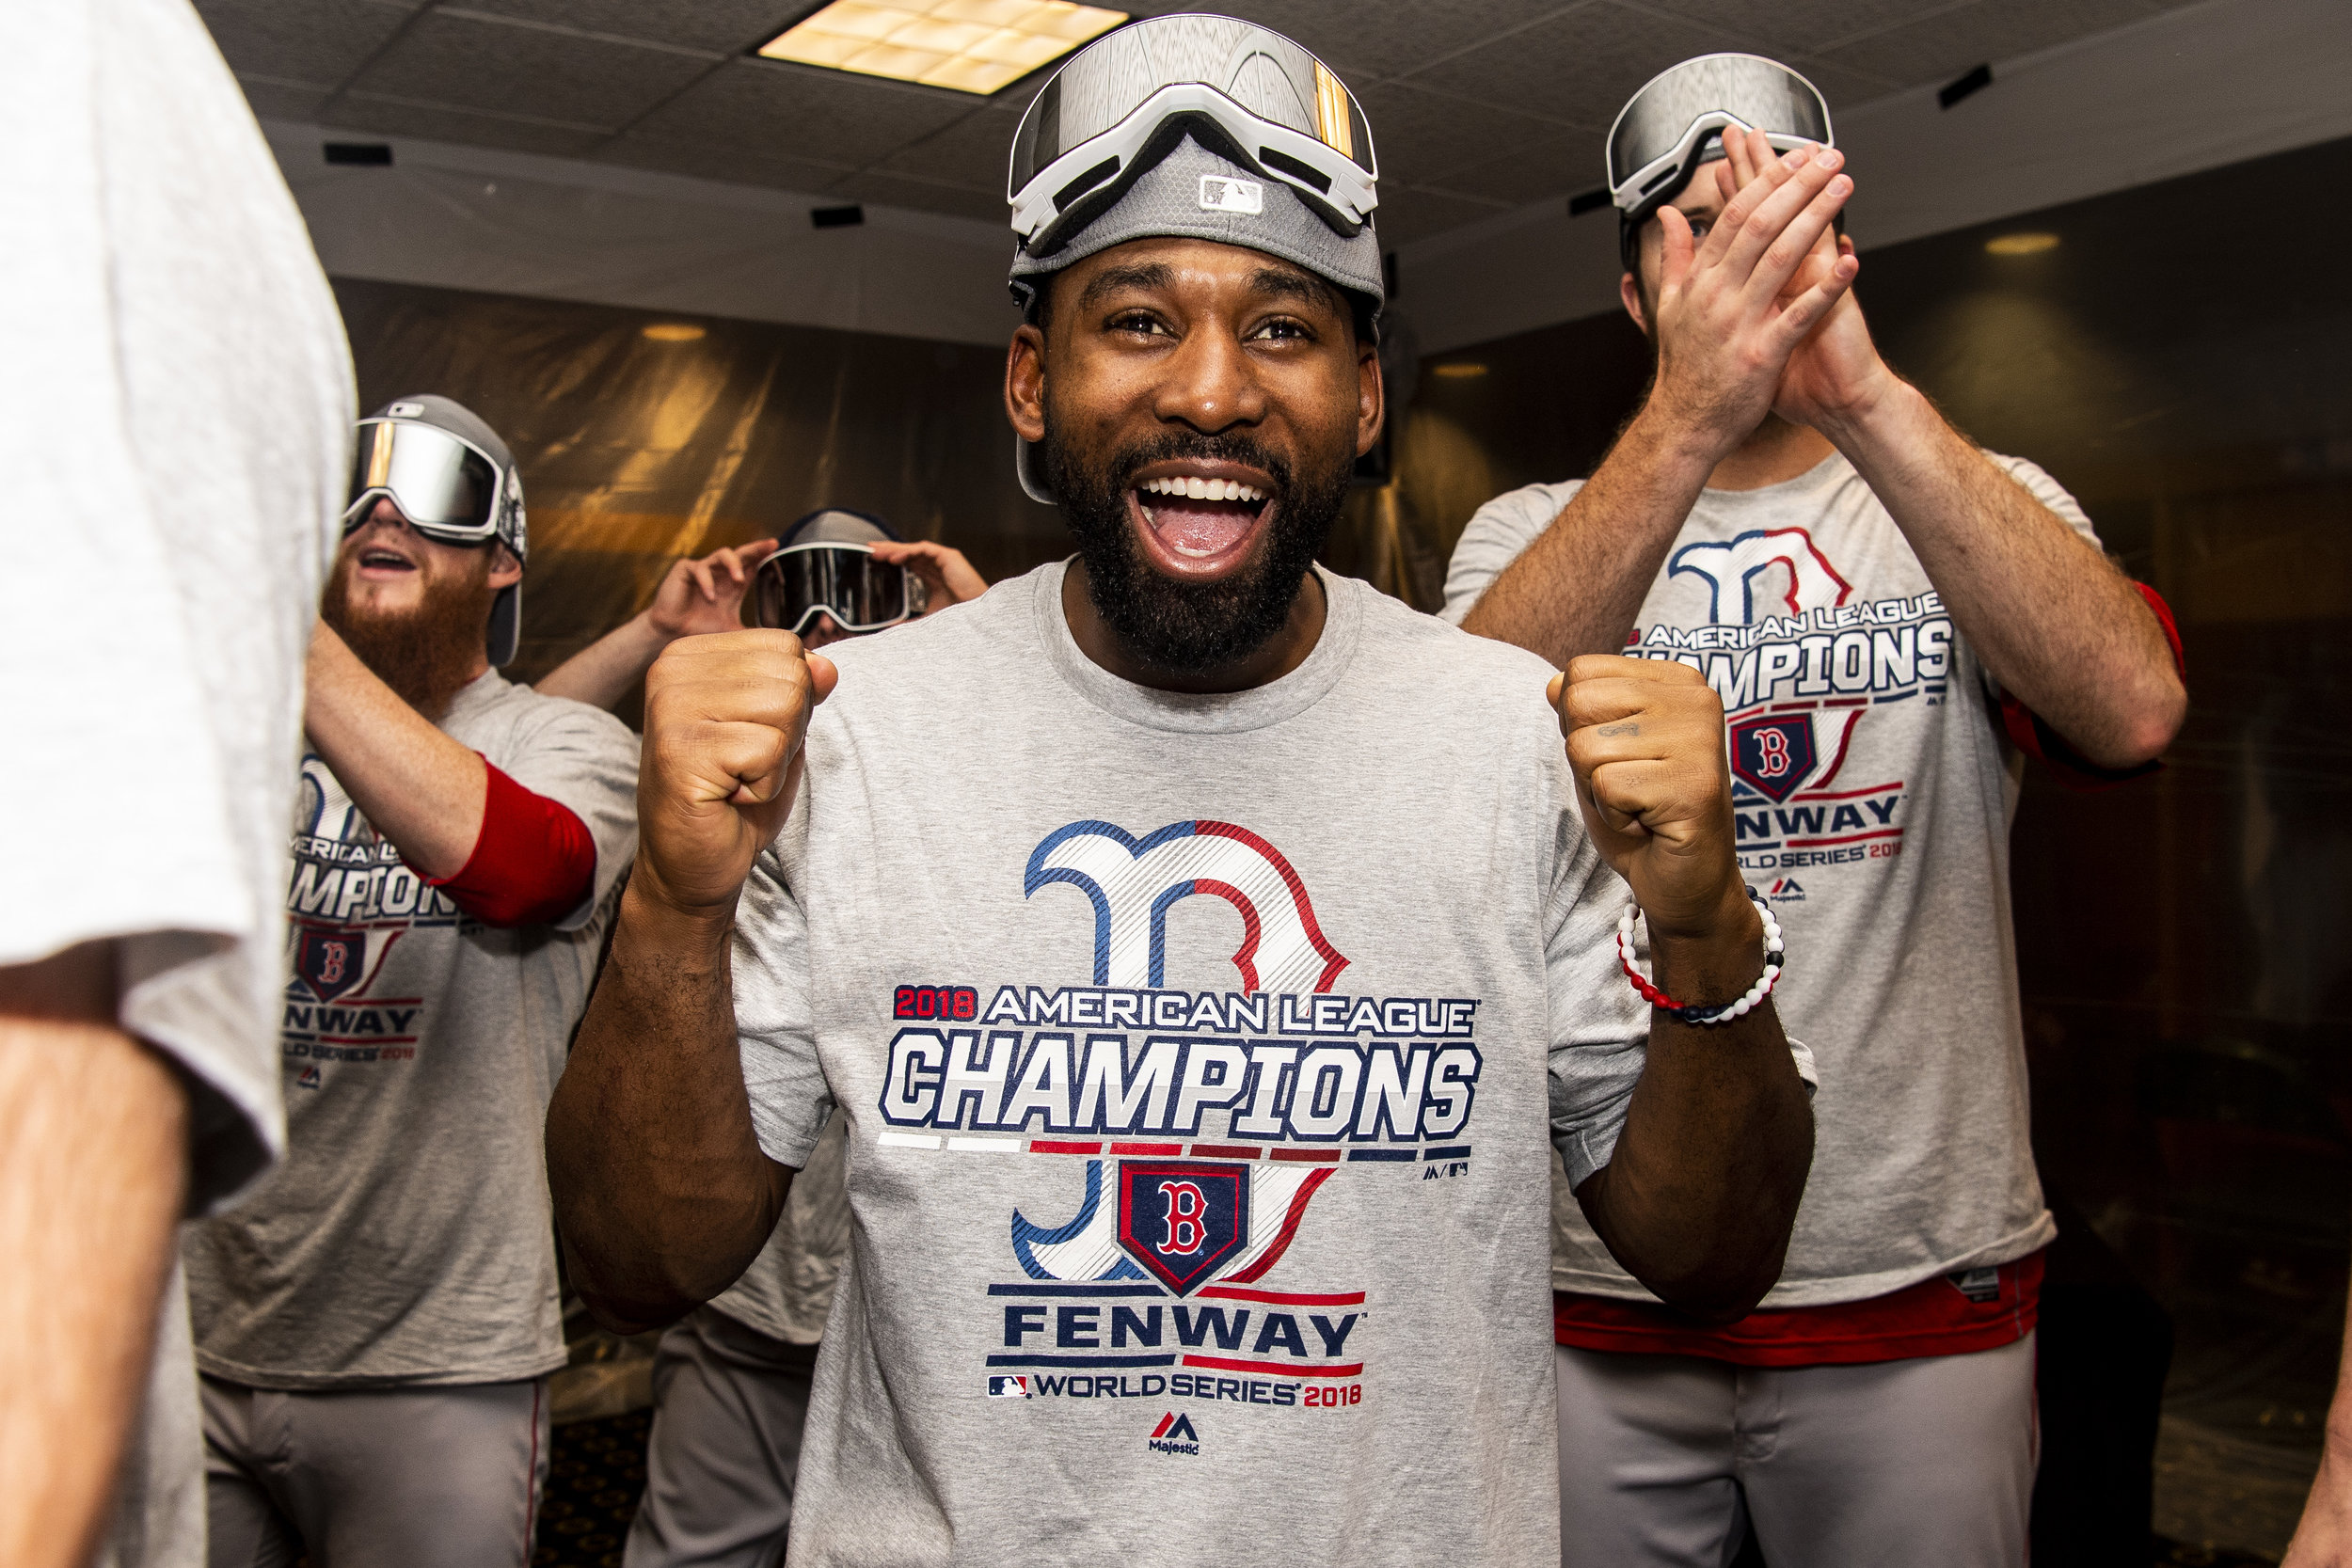 October 18, 2018, Houston, TX: Boston Red Sox outfielder Jackie Bradley Jr. celebrates after the Boston Red Sox defeated the Houston Astros in Game 5 of the ALCS to advance to the World Series at Minute Maid Park in Houston, Texas on Thursday, October 18, 2018. (Photo by Matthew Thomas/Boston Red Sox)